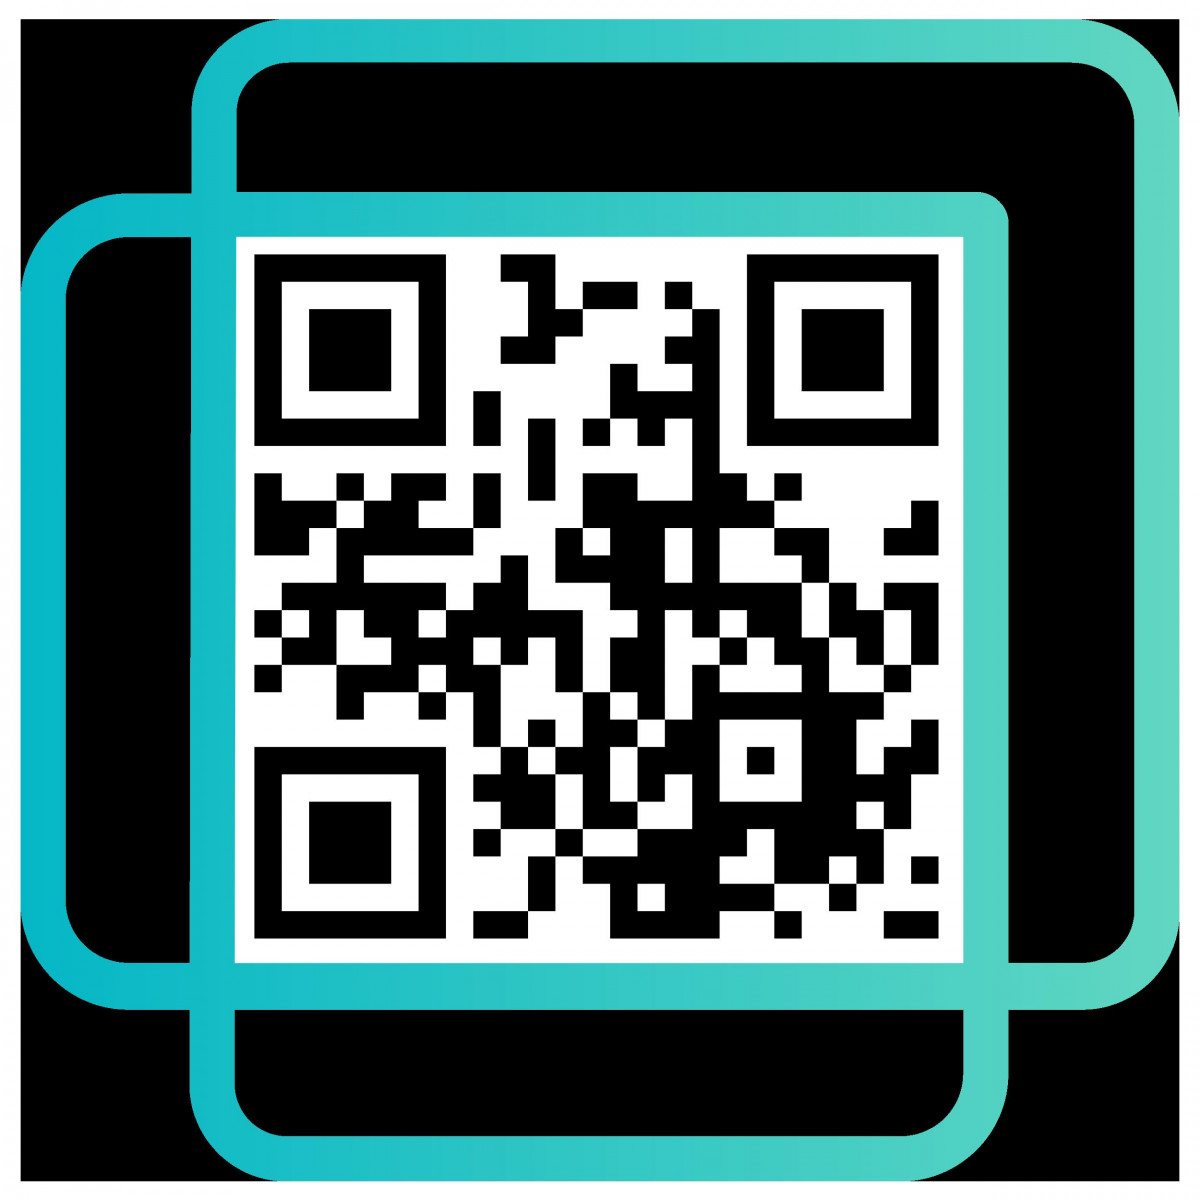 QR code for donations to St John the Baptist Church Westbourne